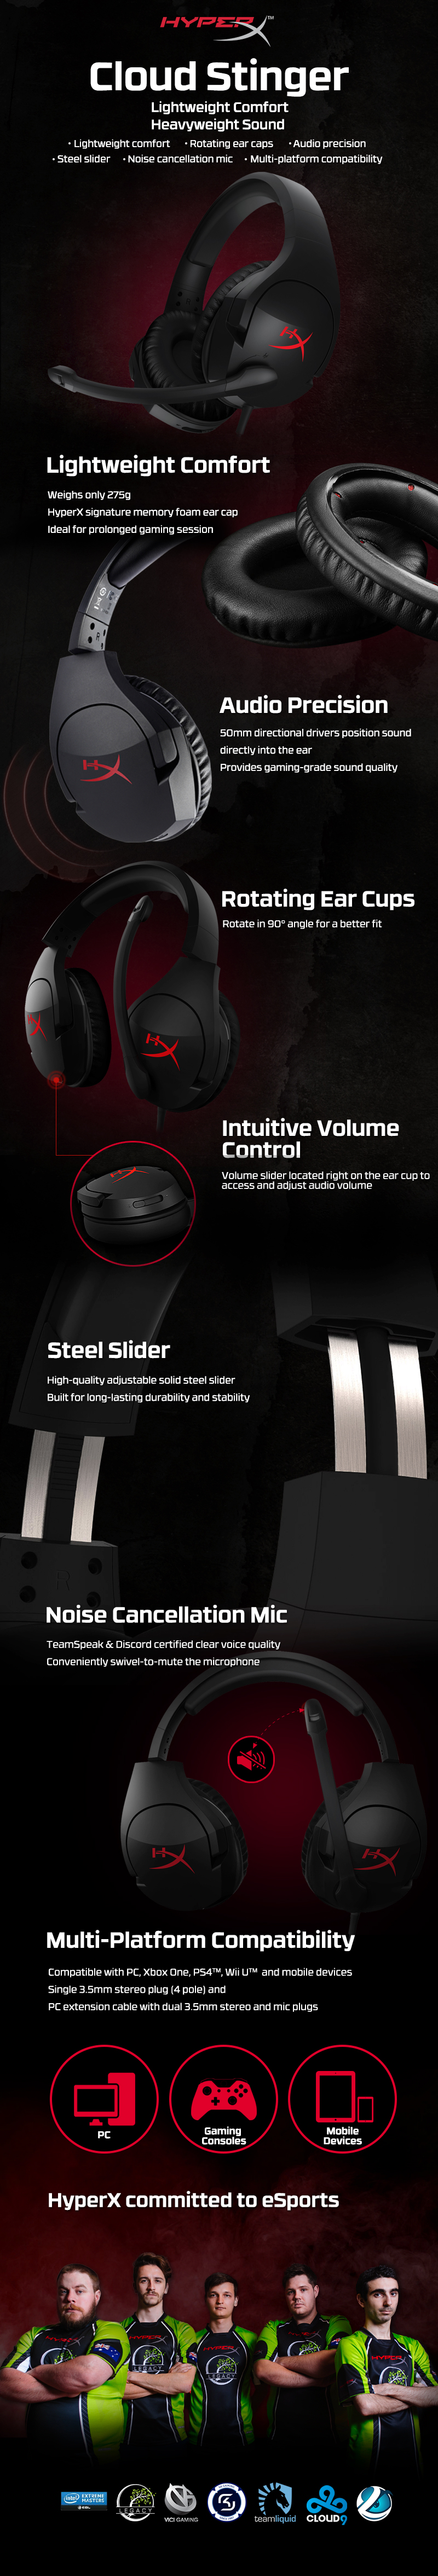 A large marketing image providing additional information about the product Kingston HyperX Cloud Stinger Gaming Headset Black - Additional alt info not provided